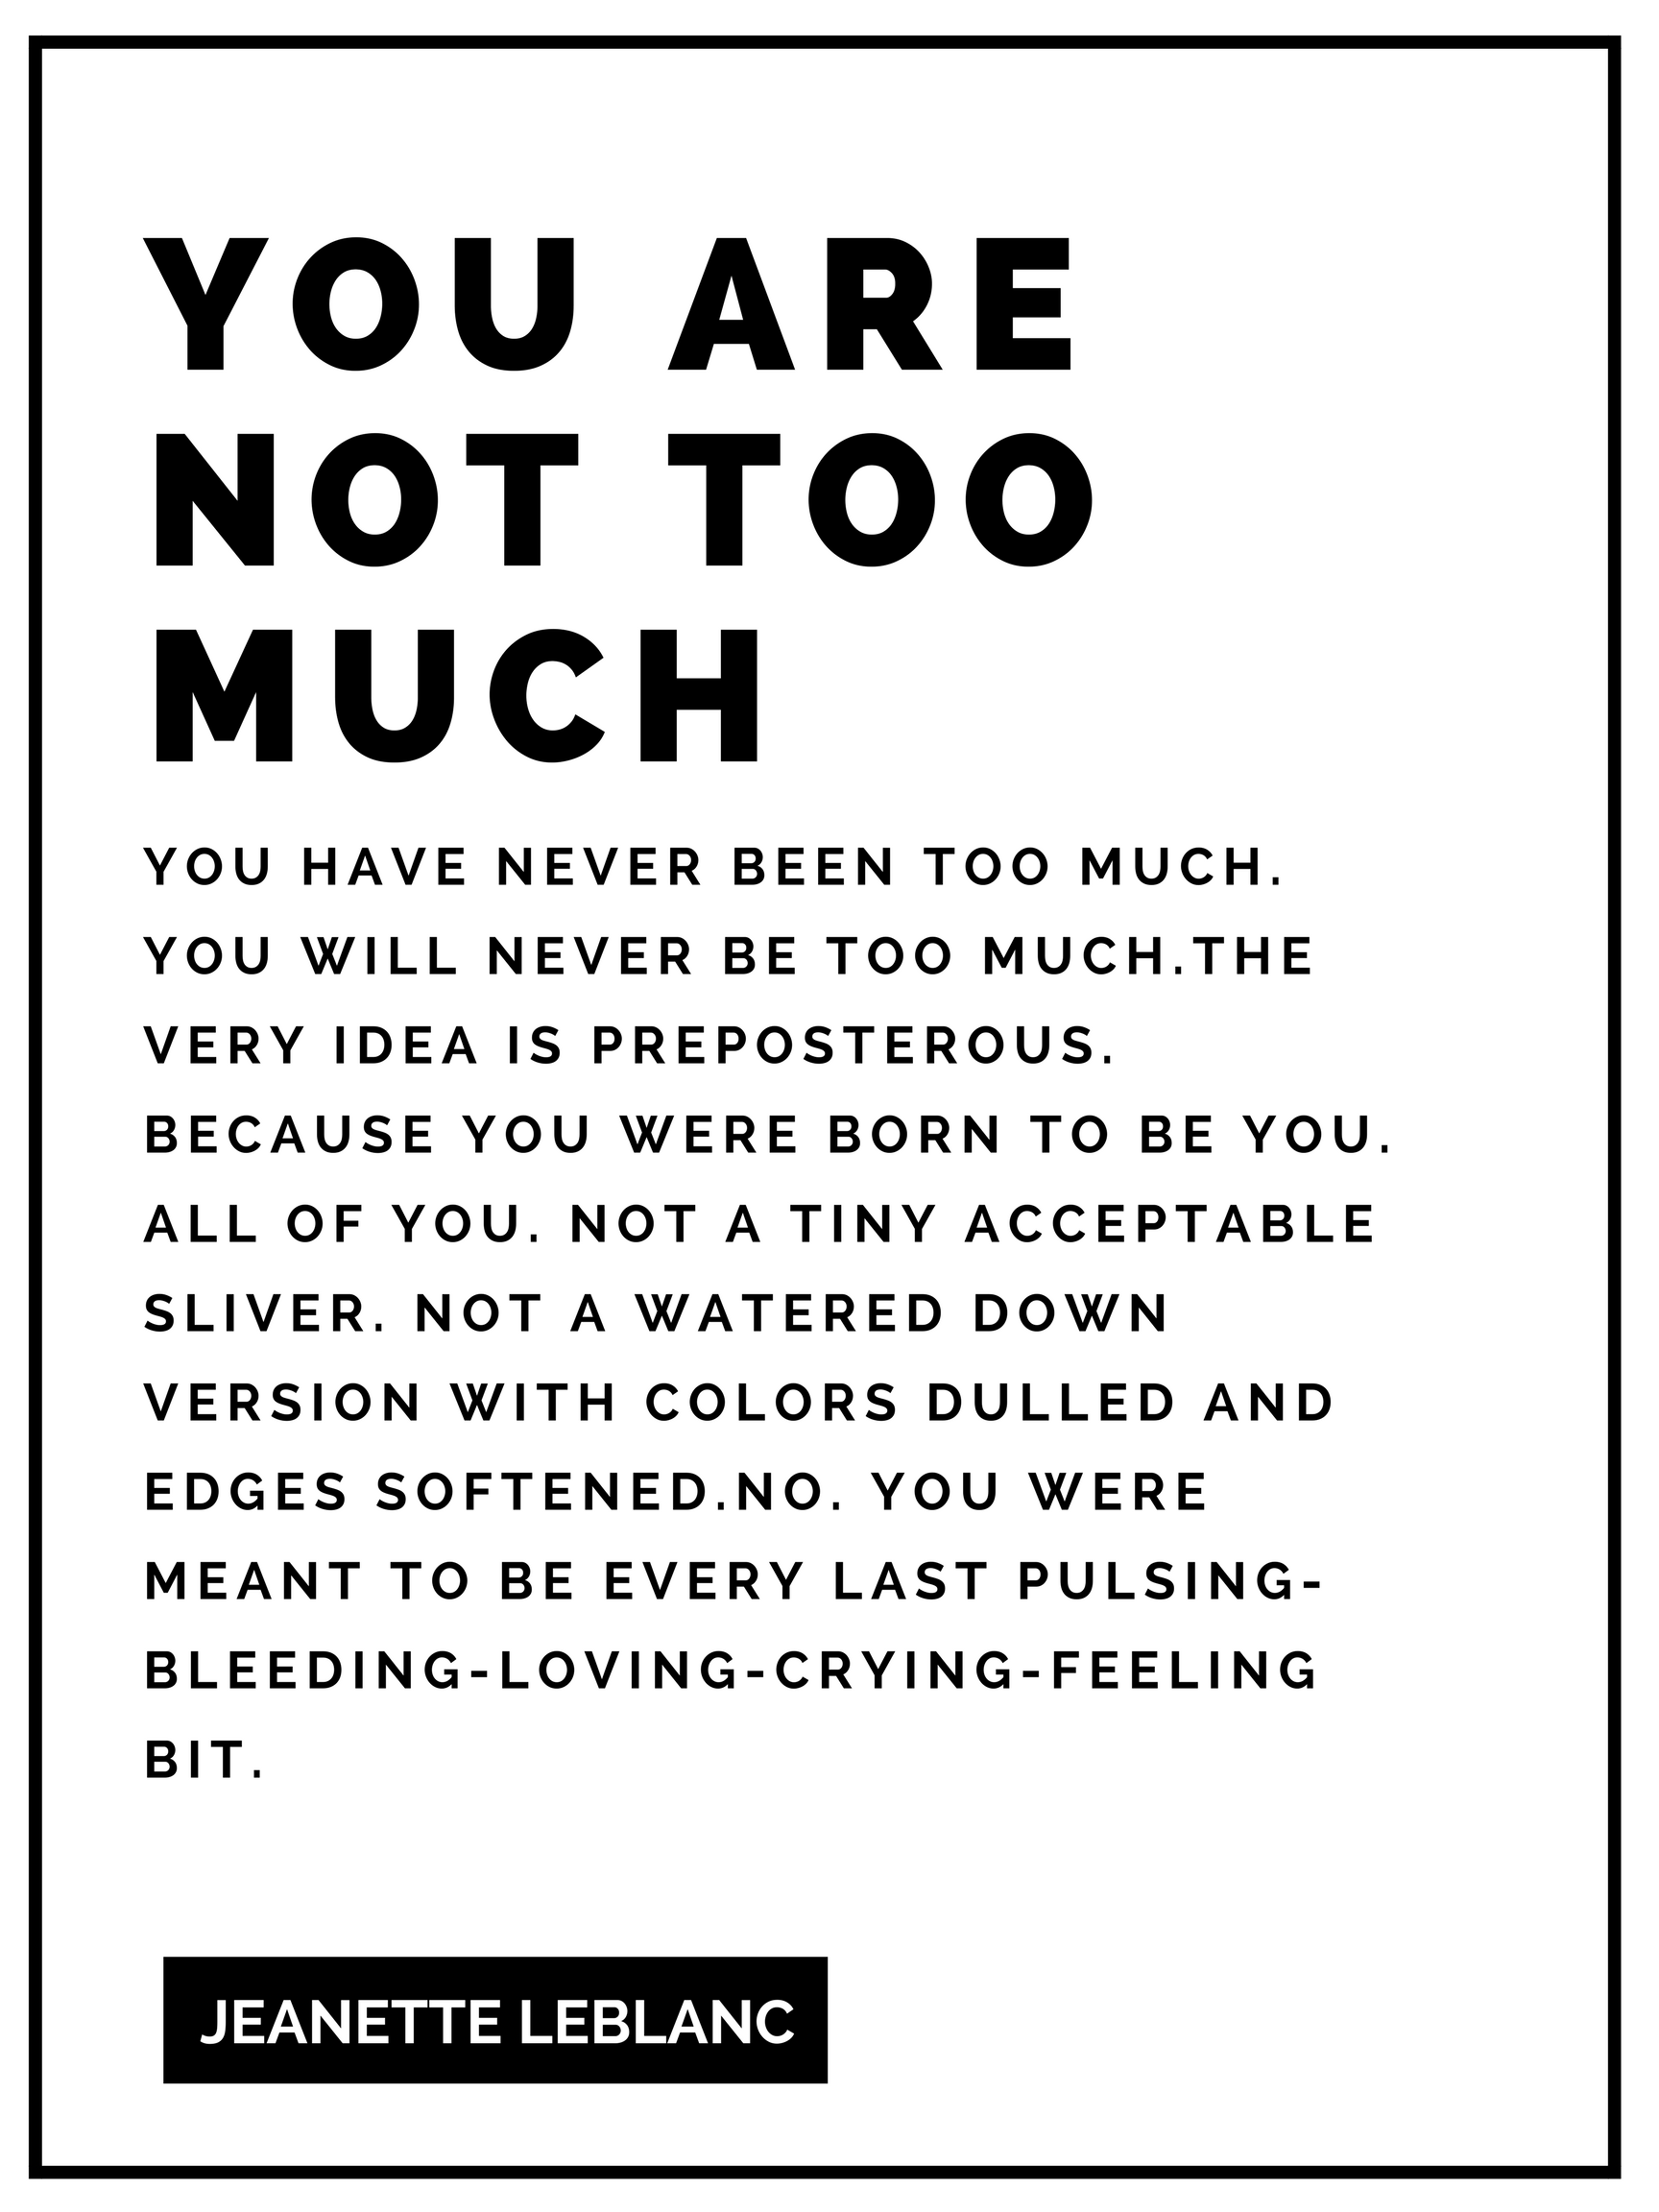 You are not too much -  Quote by Jeanette LeBlanc